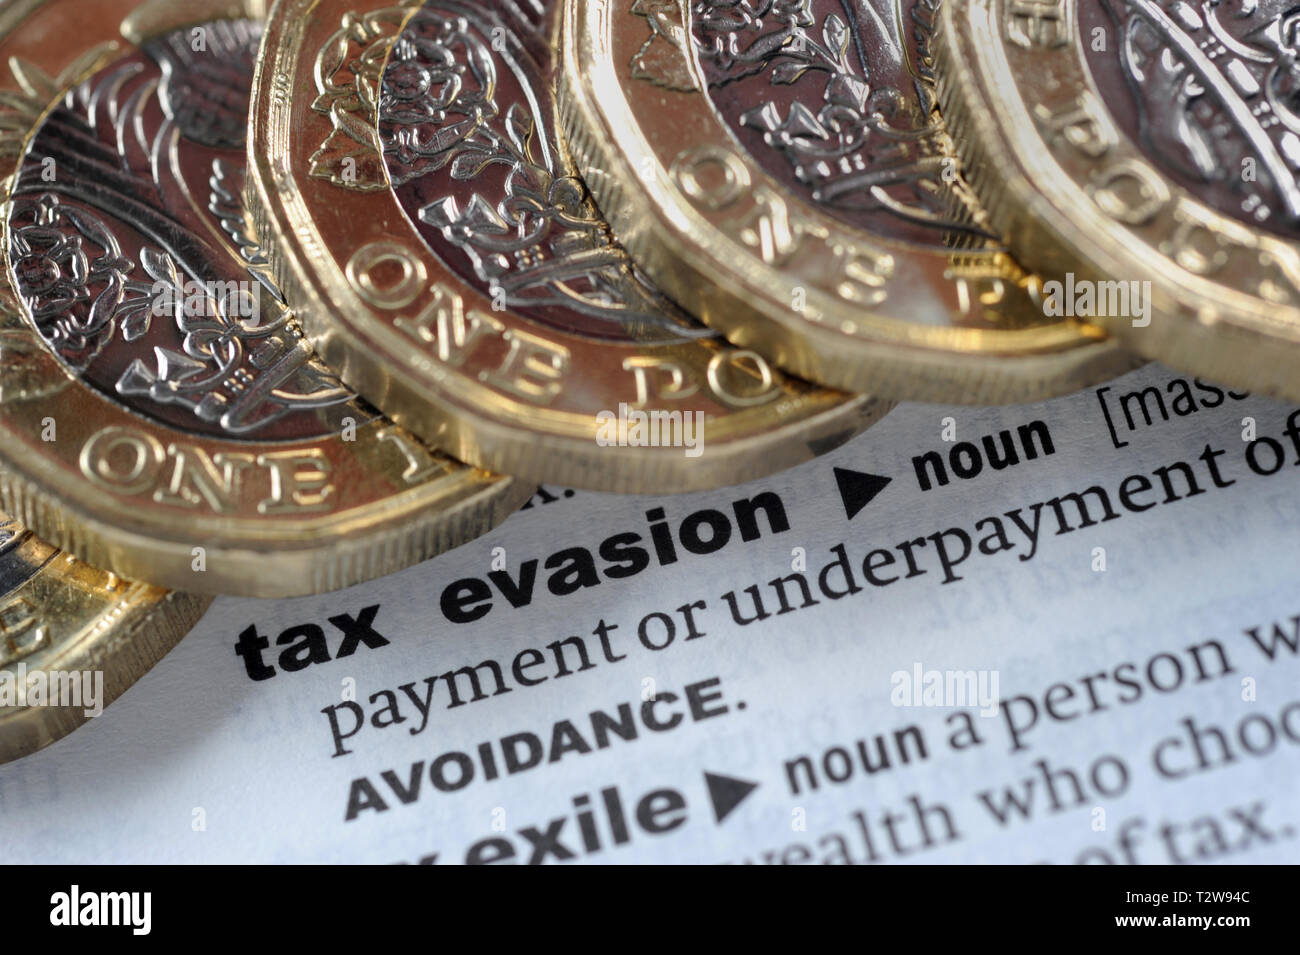 DICTIONARY DEFINITION OF TAX EVASION WITH ONE POUND COINS RE PENSIONS TAX HMRC ETC UK - Stock Image